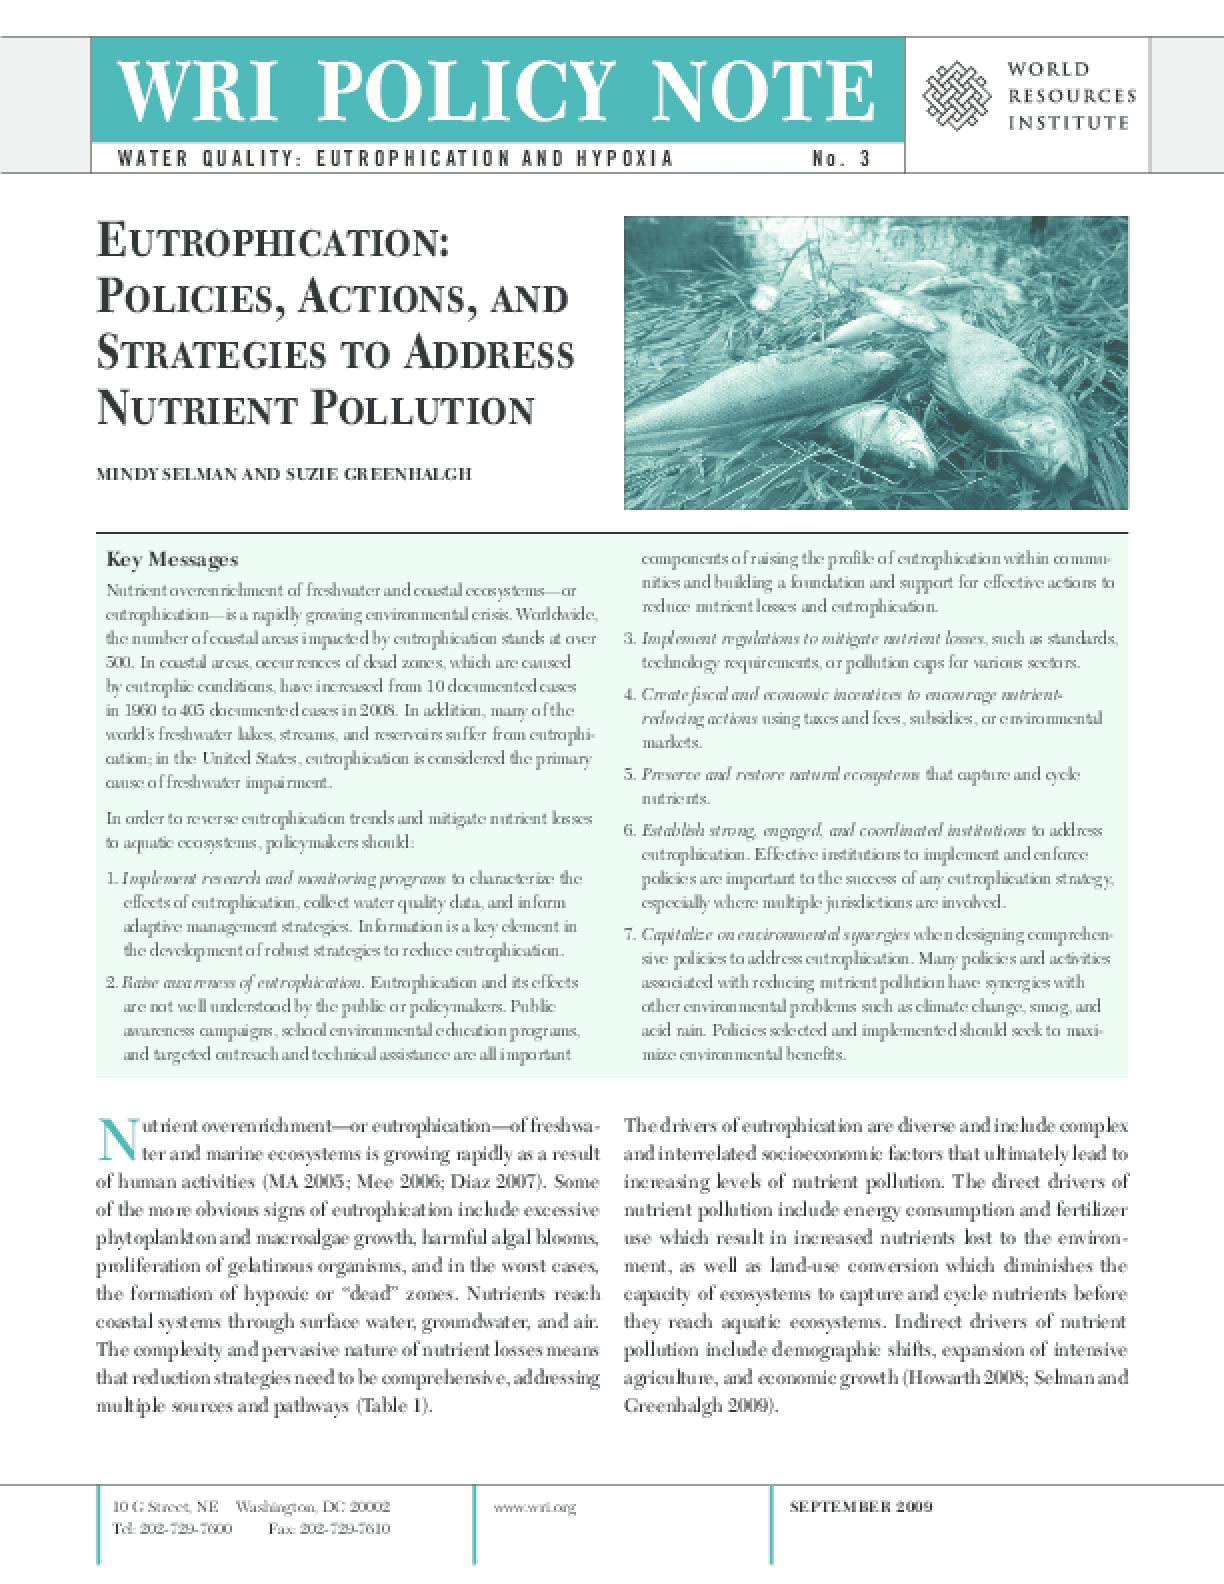 Eutrophication: Policies, Action, and Strategies to Address Nutrient Pollution